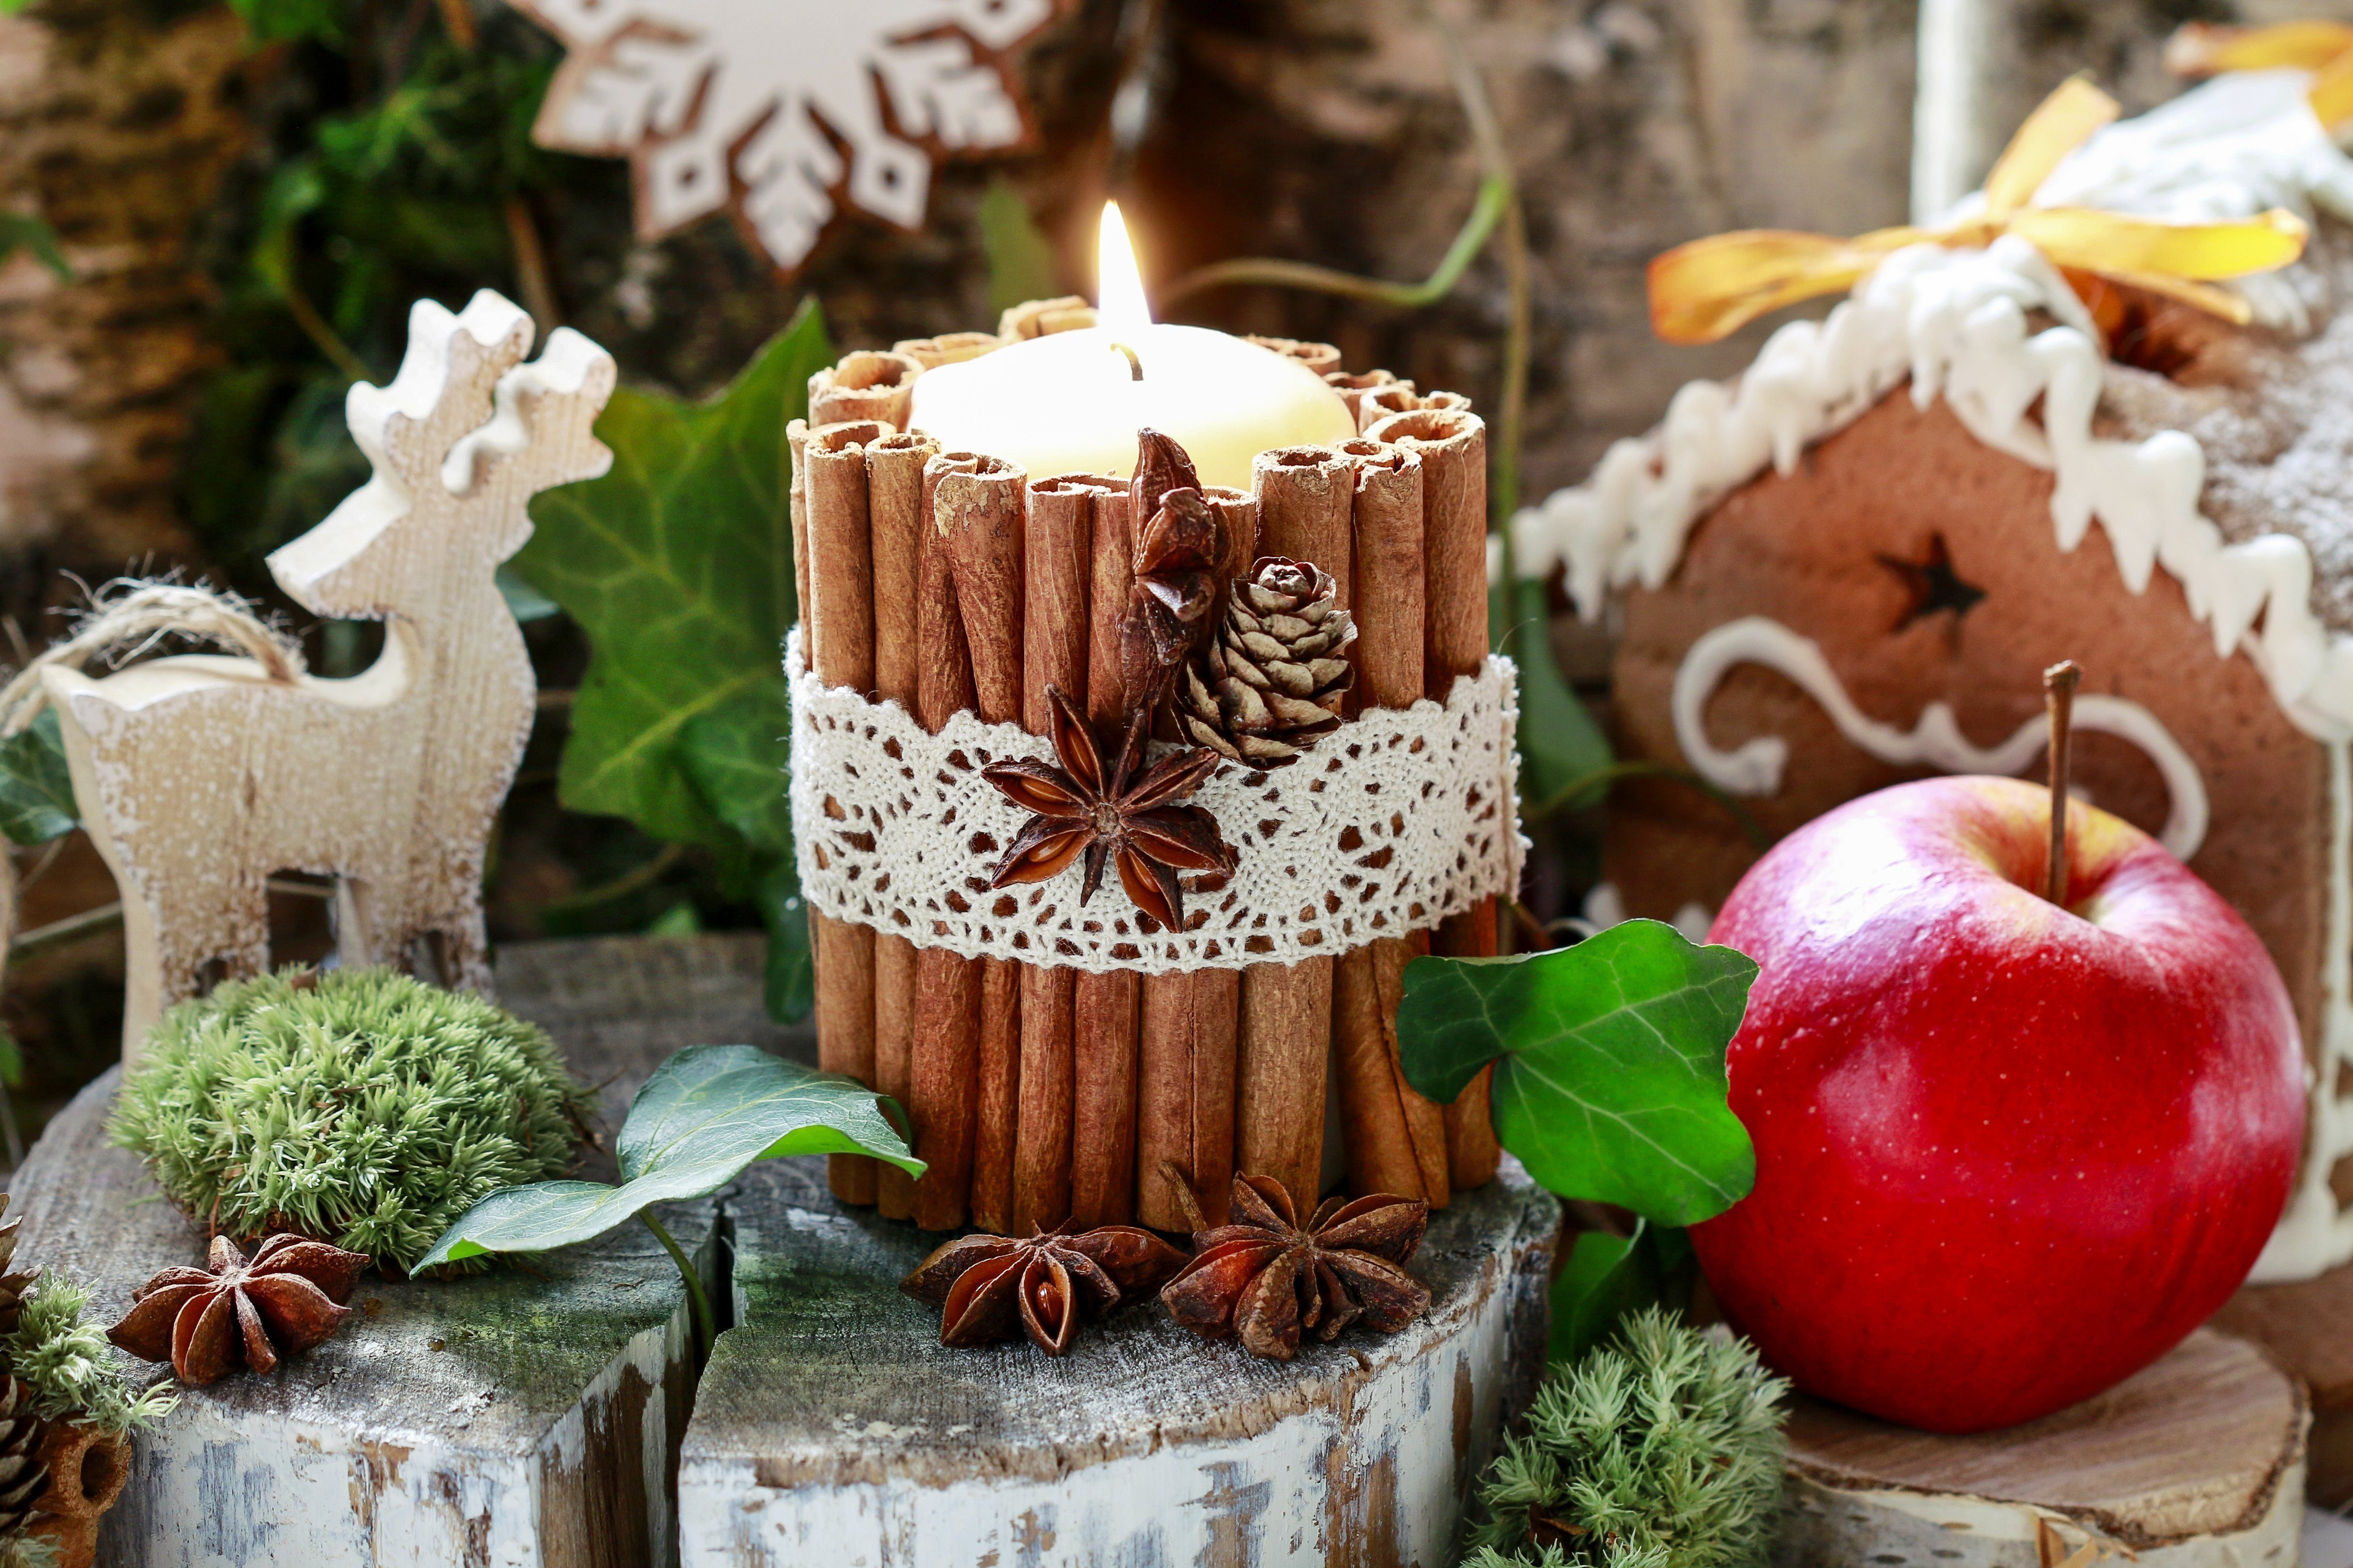 Candle decorated with cinnamon sticks, moss, ivy leaves and wooden deers - beautiful natural Christmas arrangement.